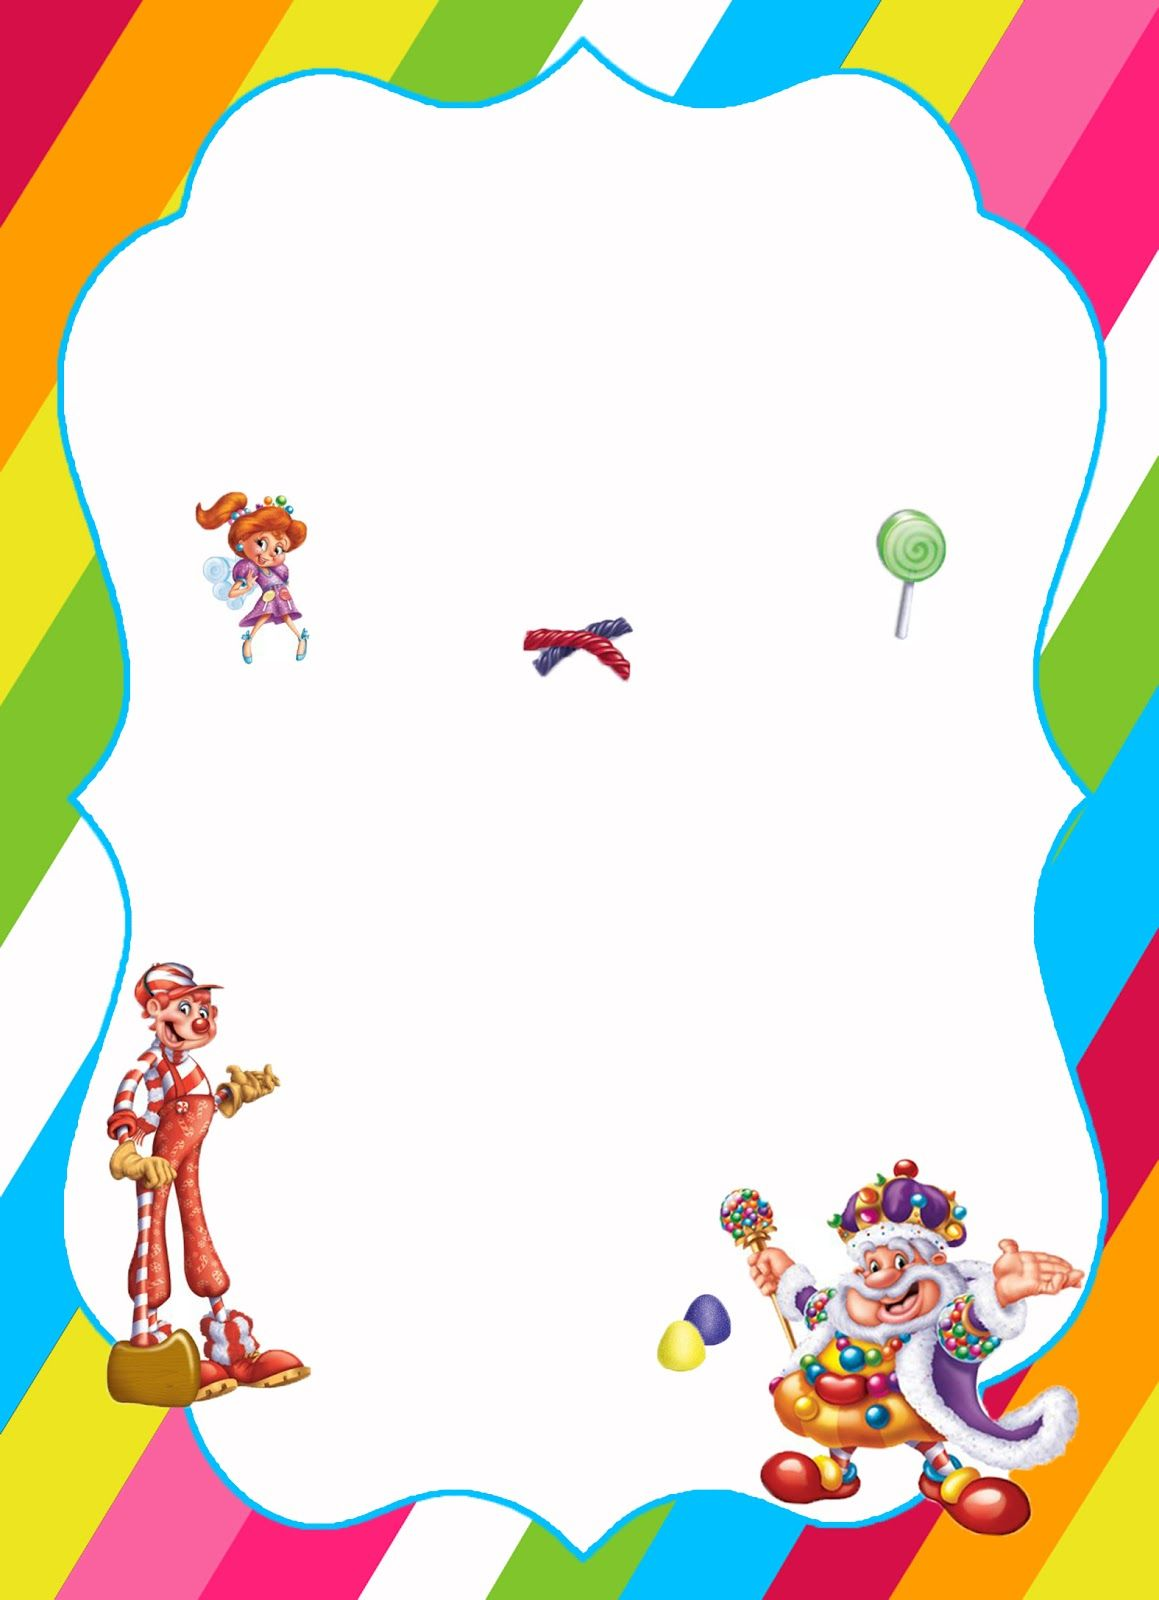 candyland theme birthday party s invitations candyland theme birthday party s invitations banners